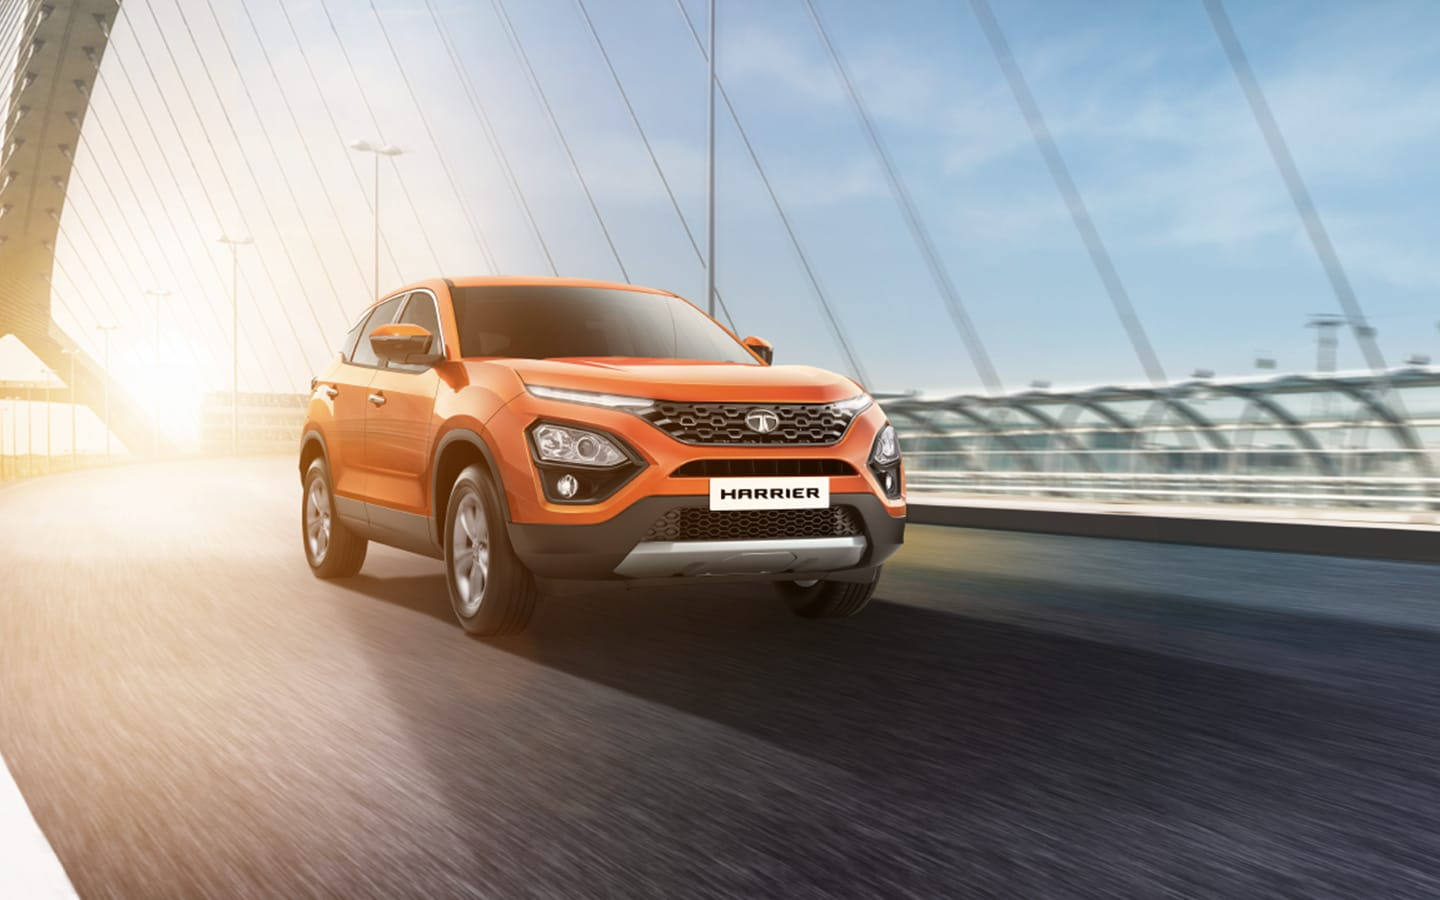 4: Tata Harrier came fourth in the list with only 740 units being sold in July in comparison to previous month's 1,216. A fall of close to 40 percent in sales volume.